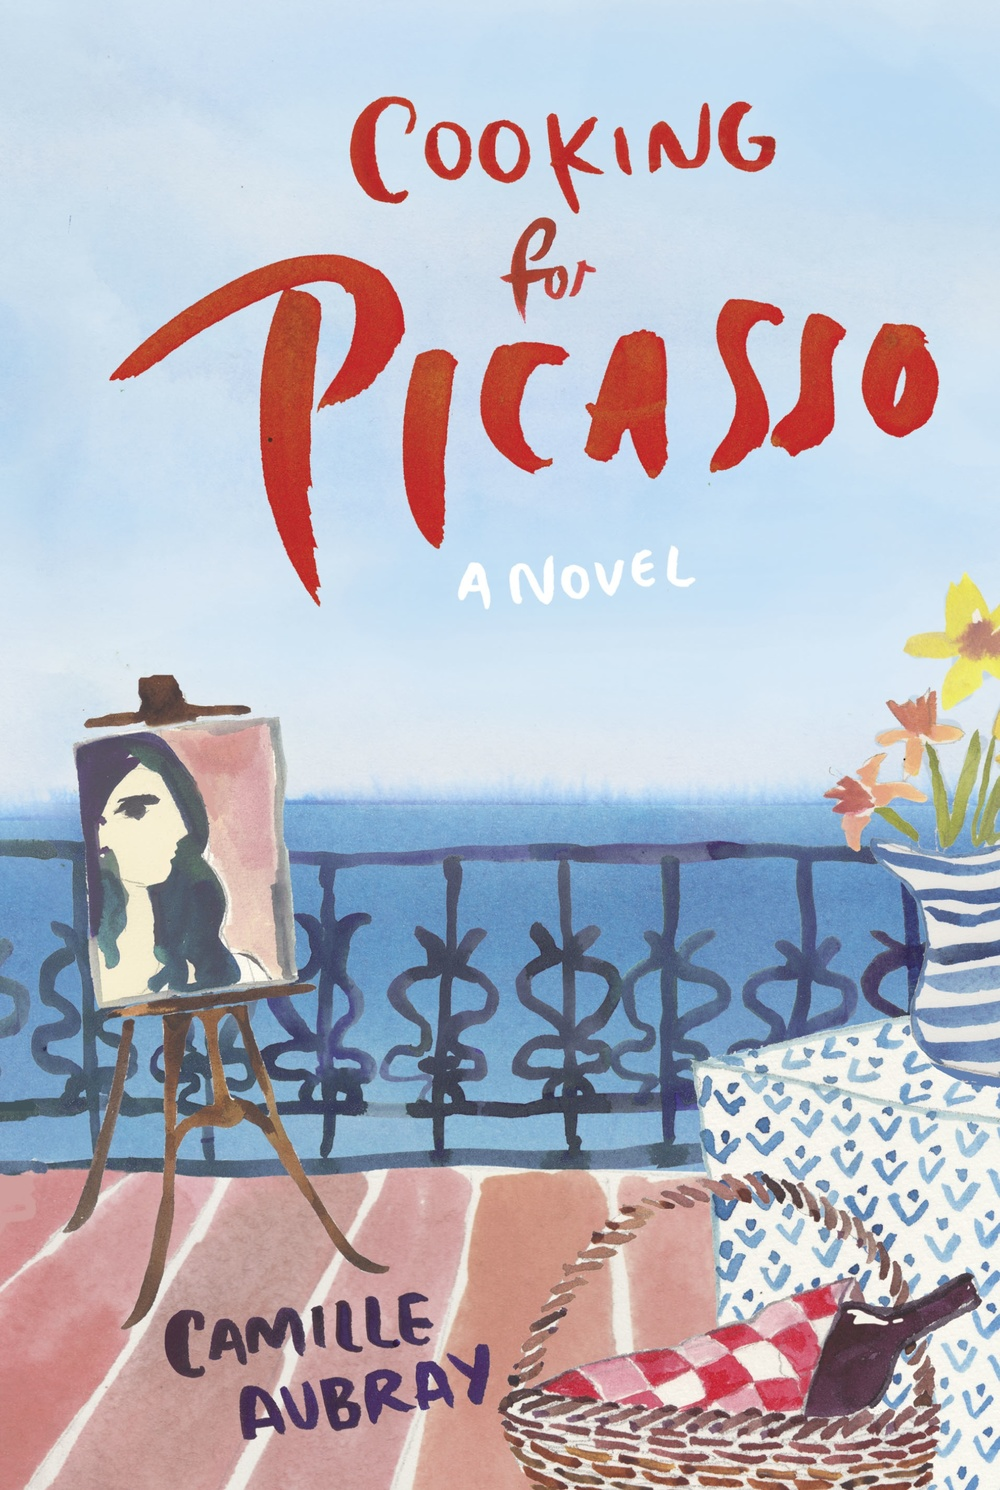 Camille Aubray - Author of Cooking for Picasso